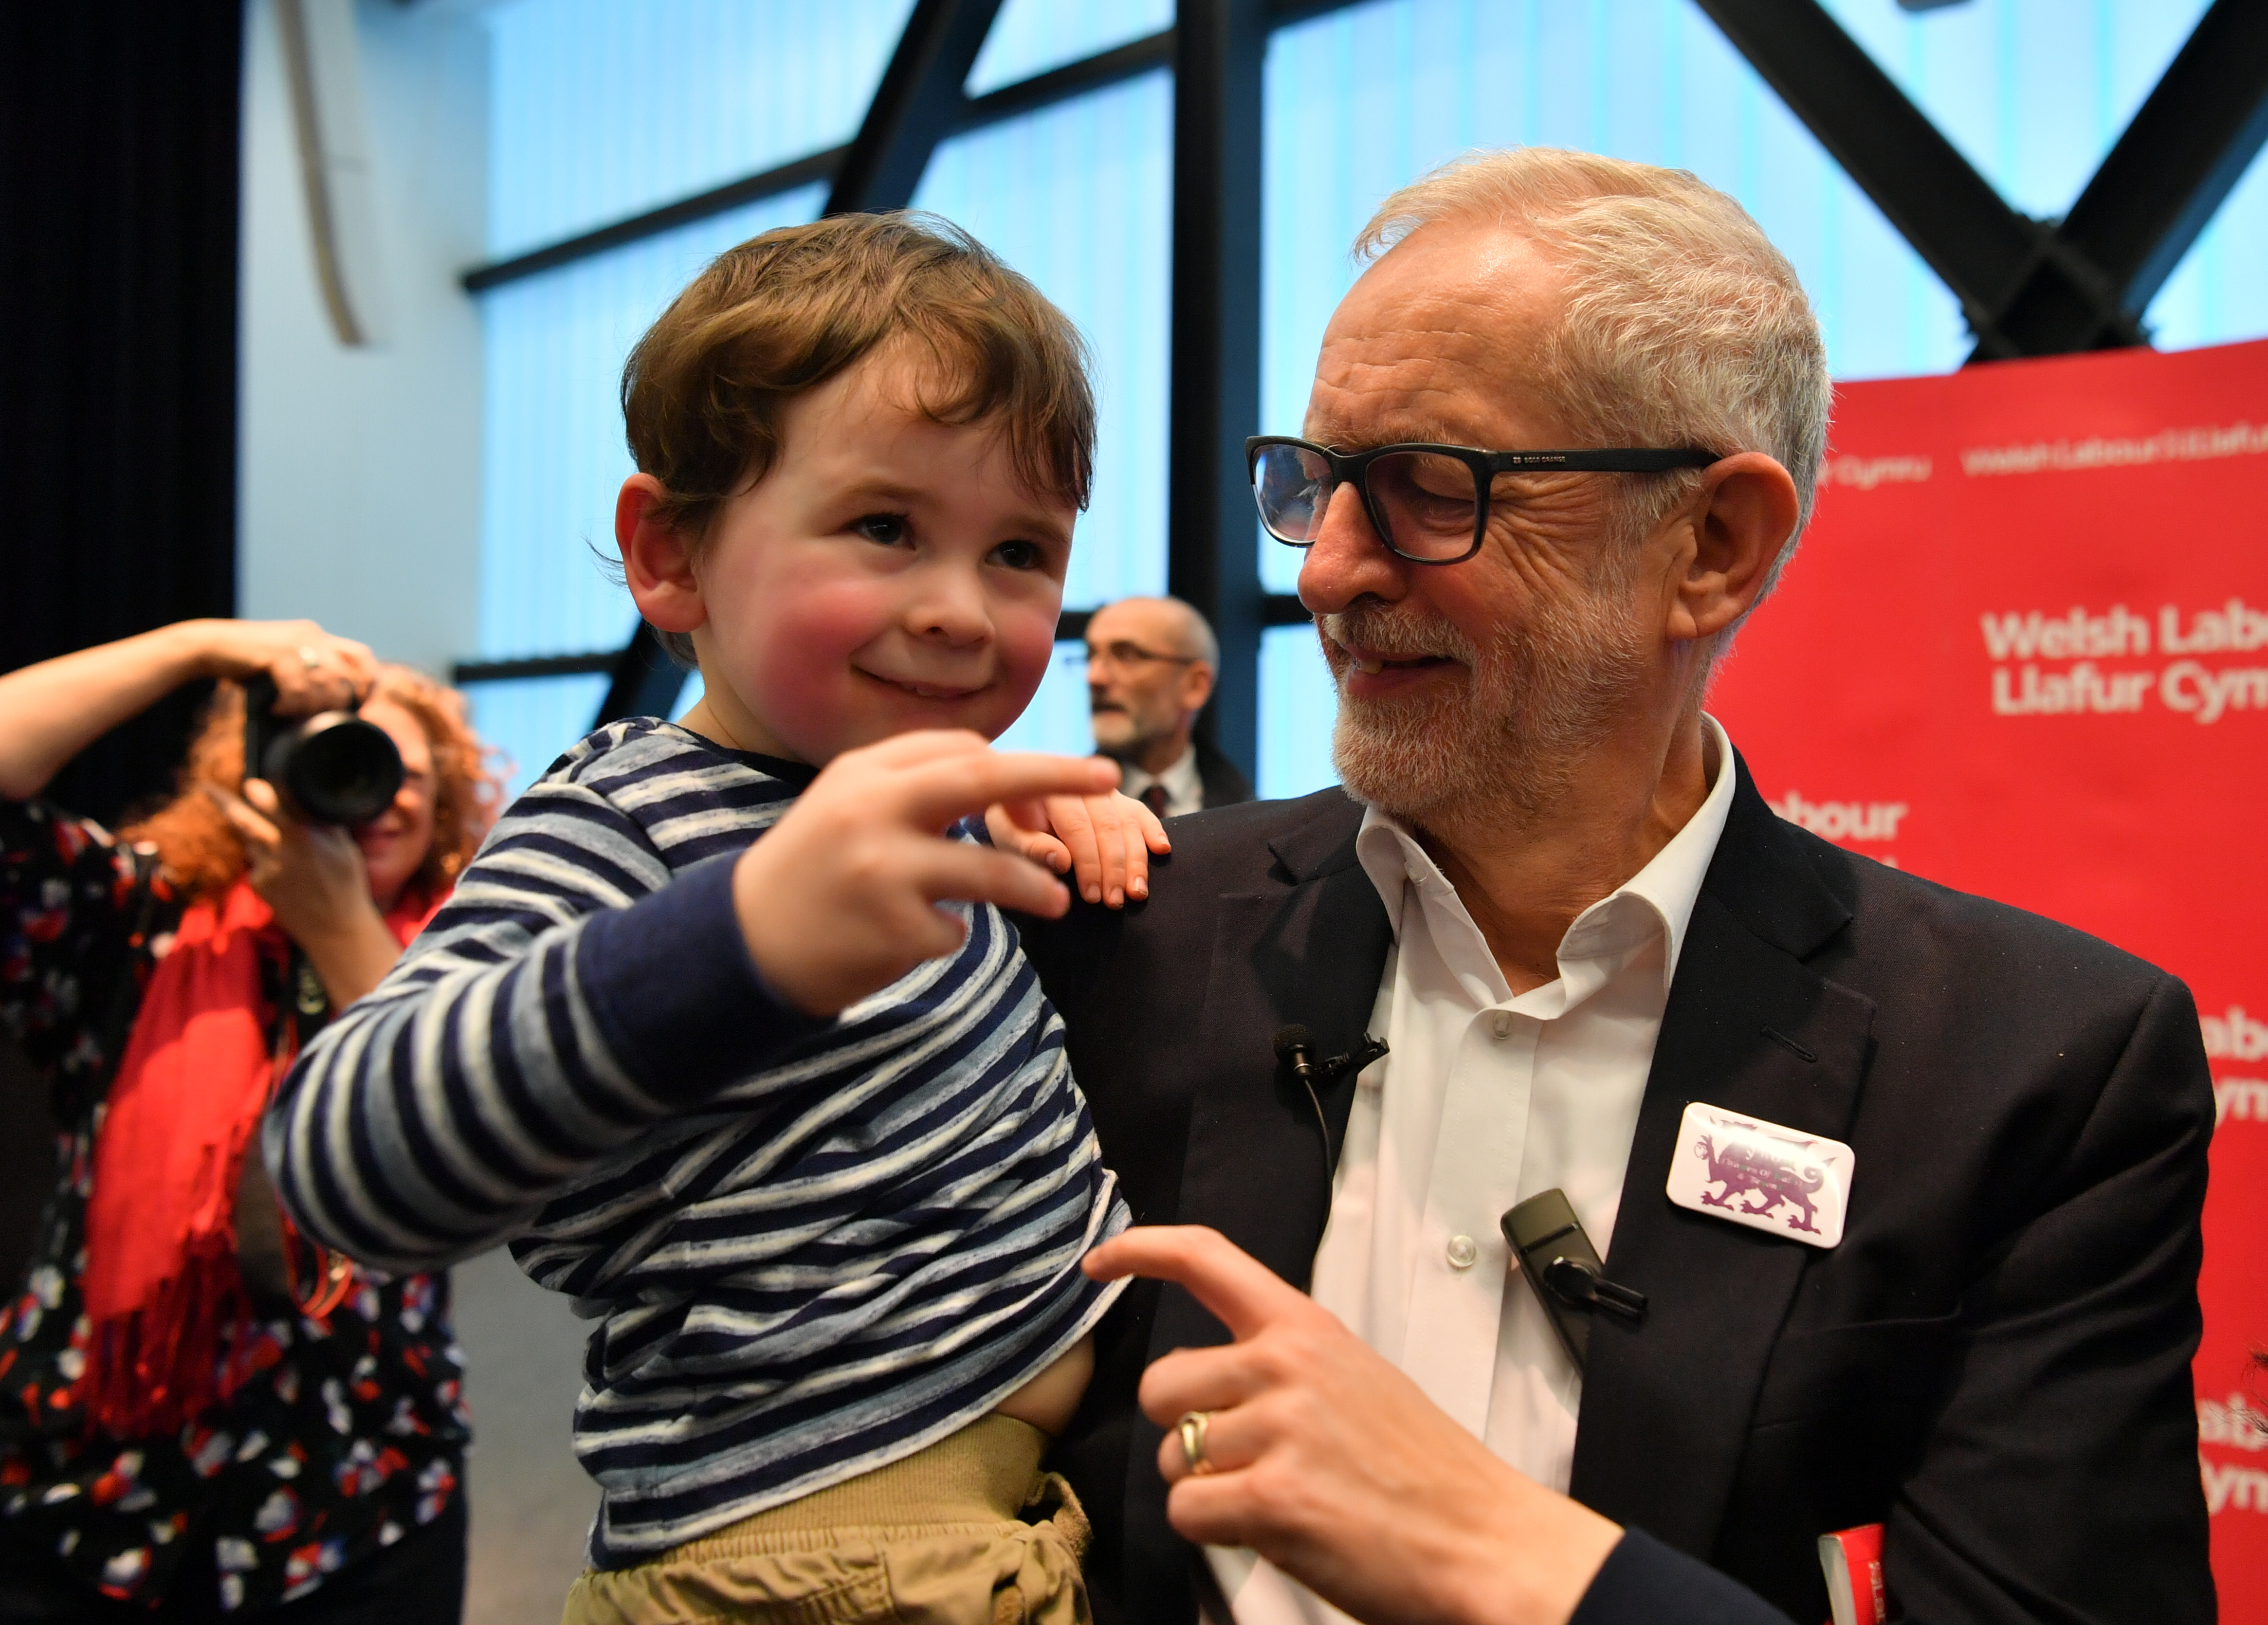 Labour Leader Jeremy Corbyn with three years old Noa Williams Roberts after addressing a members' rally at Bangor University, while on the General Election campaign trail in Wales.